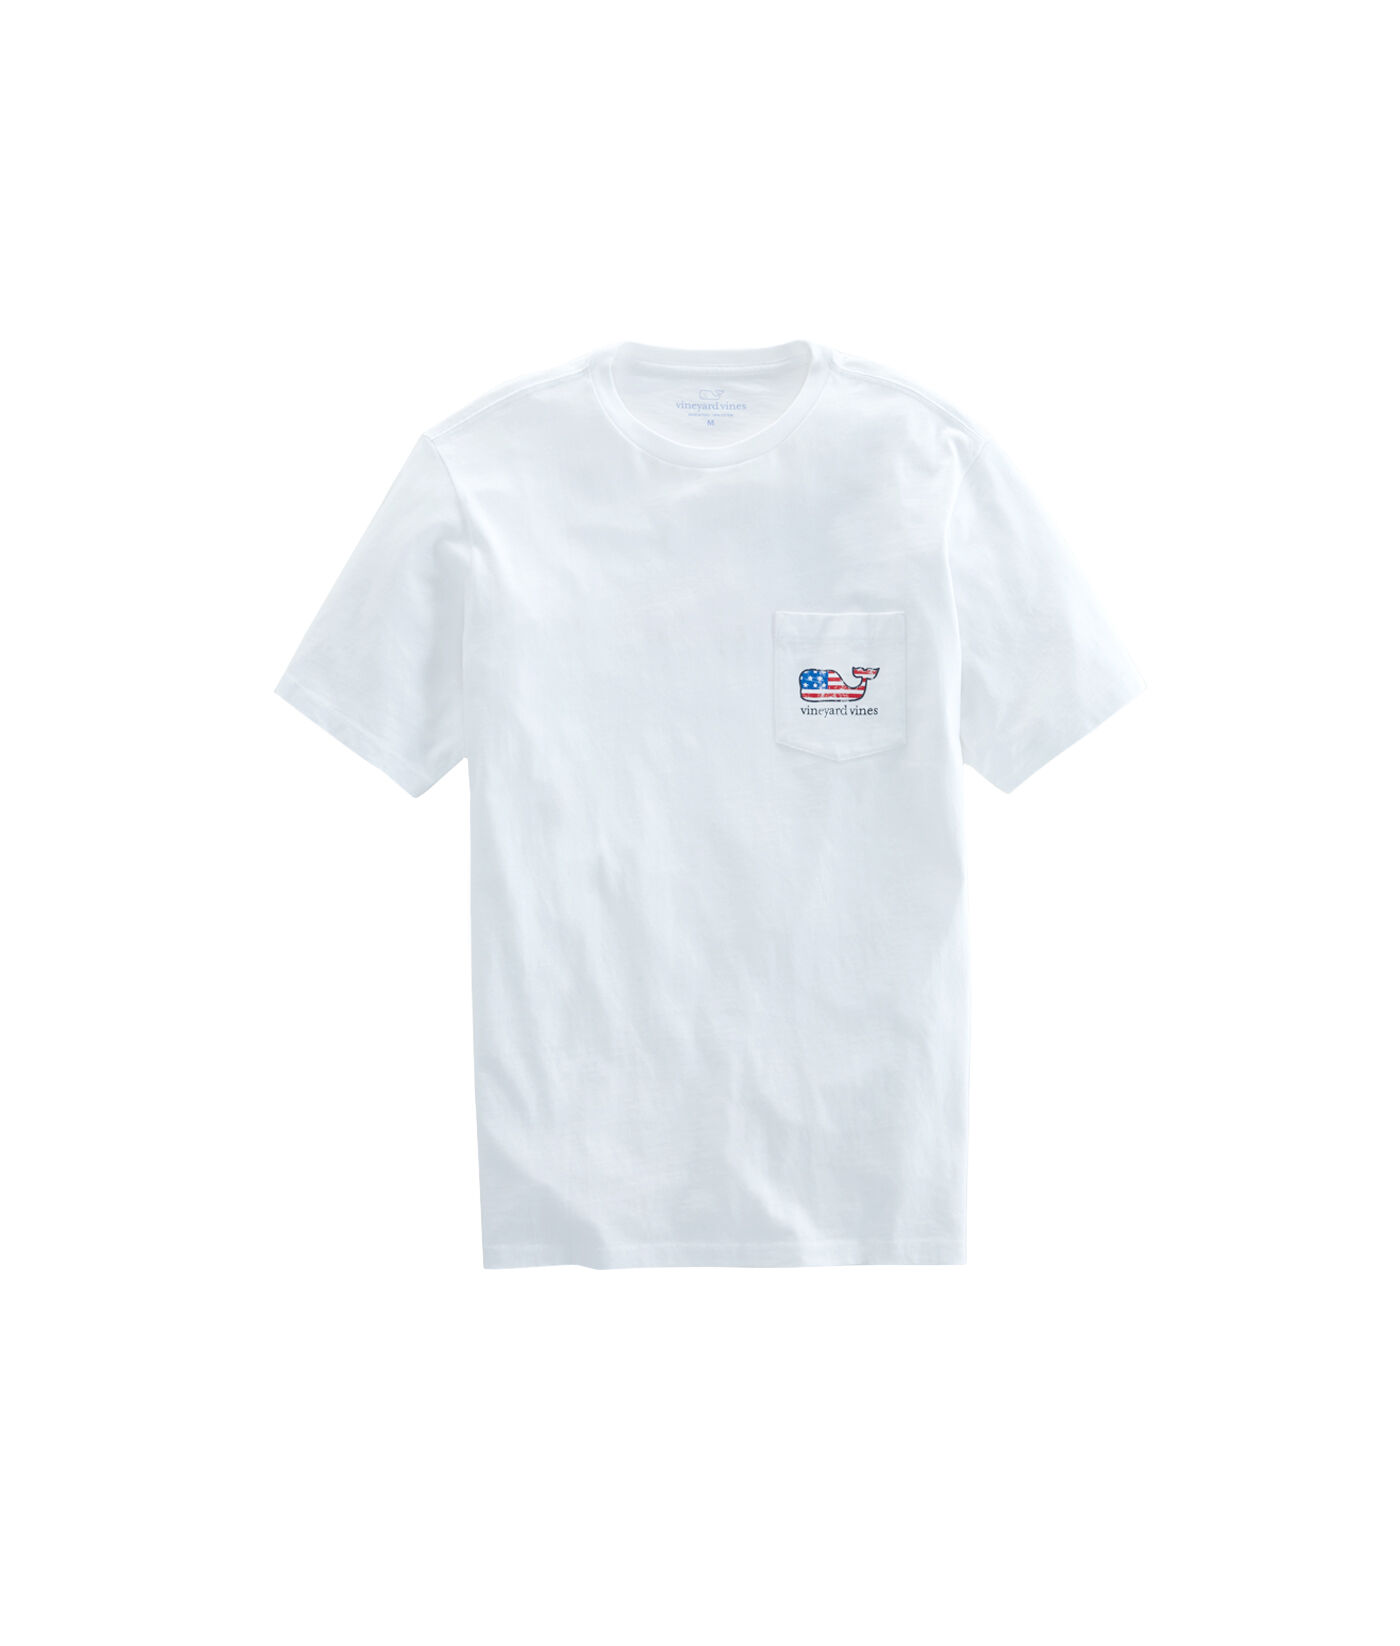 flag whale graphic t